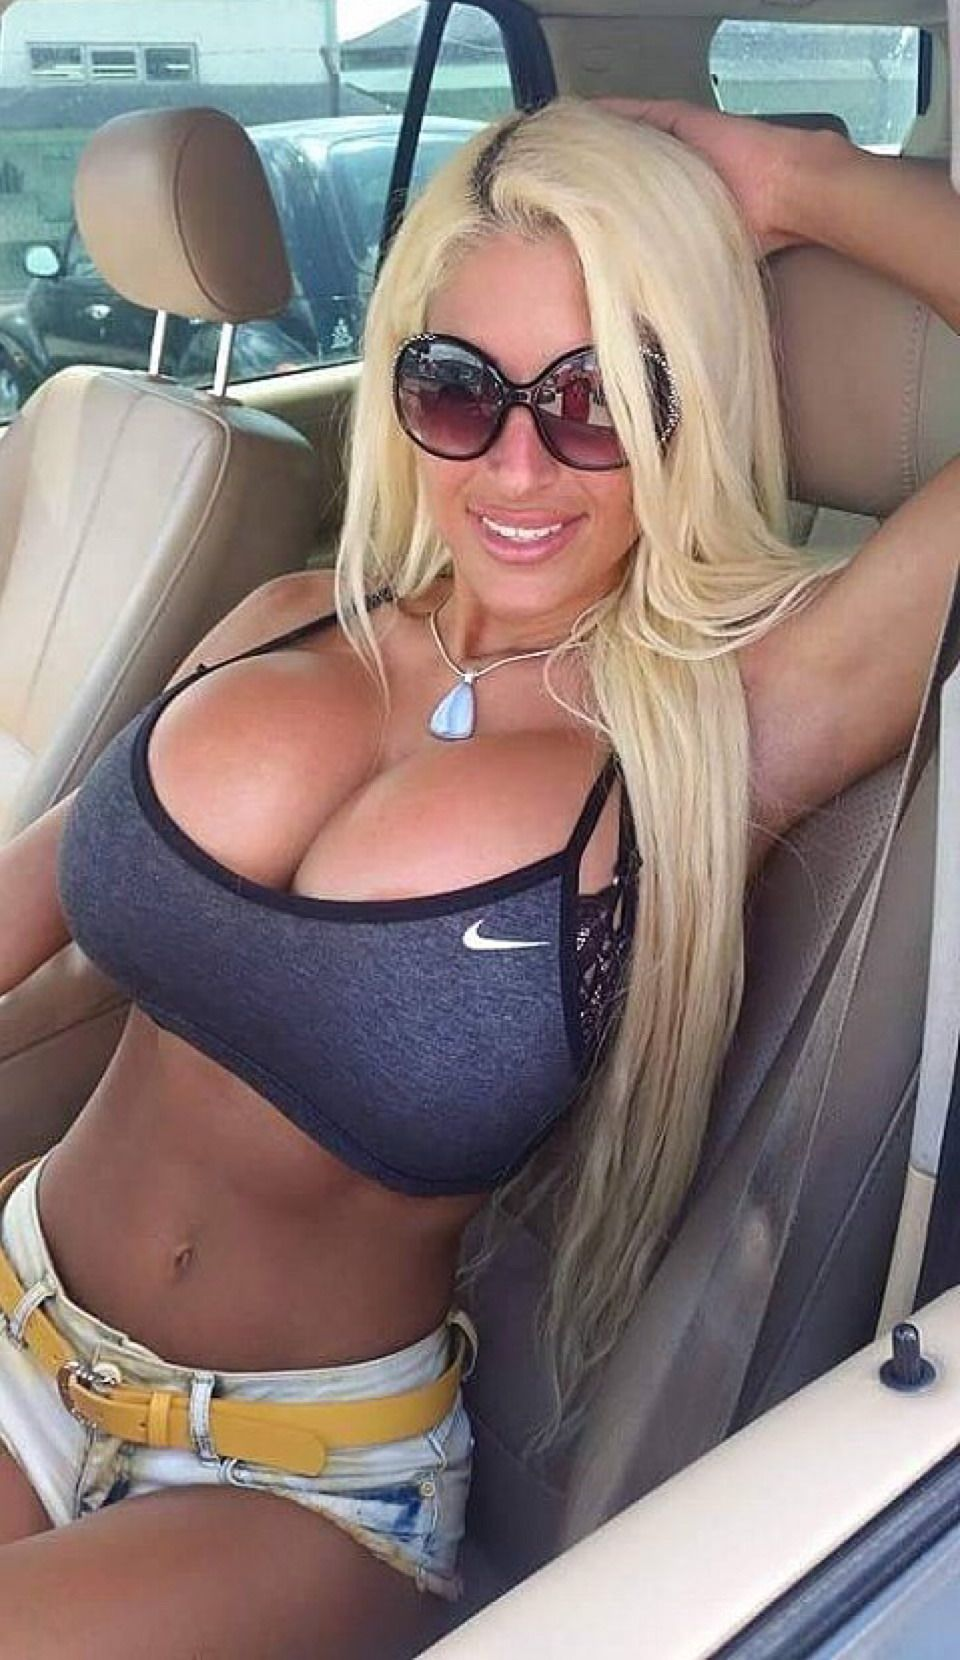 Perfect bimbo tits